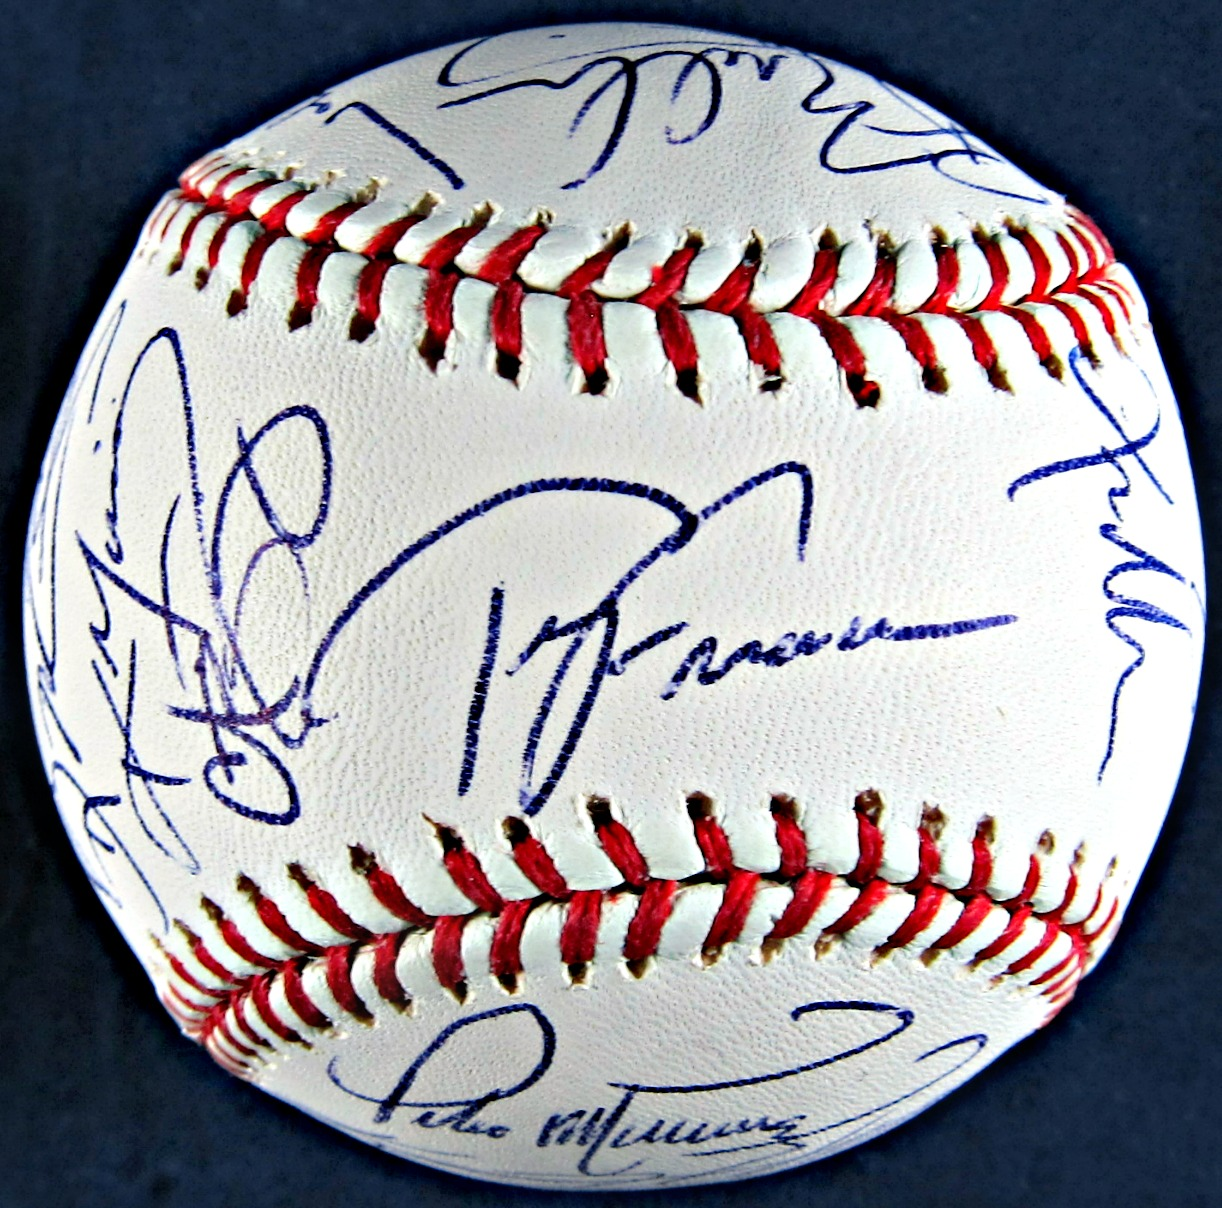 2004 Boston Red Sox Team Signed Official 2004 World Series Baseball